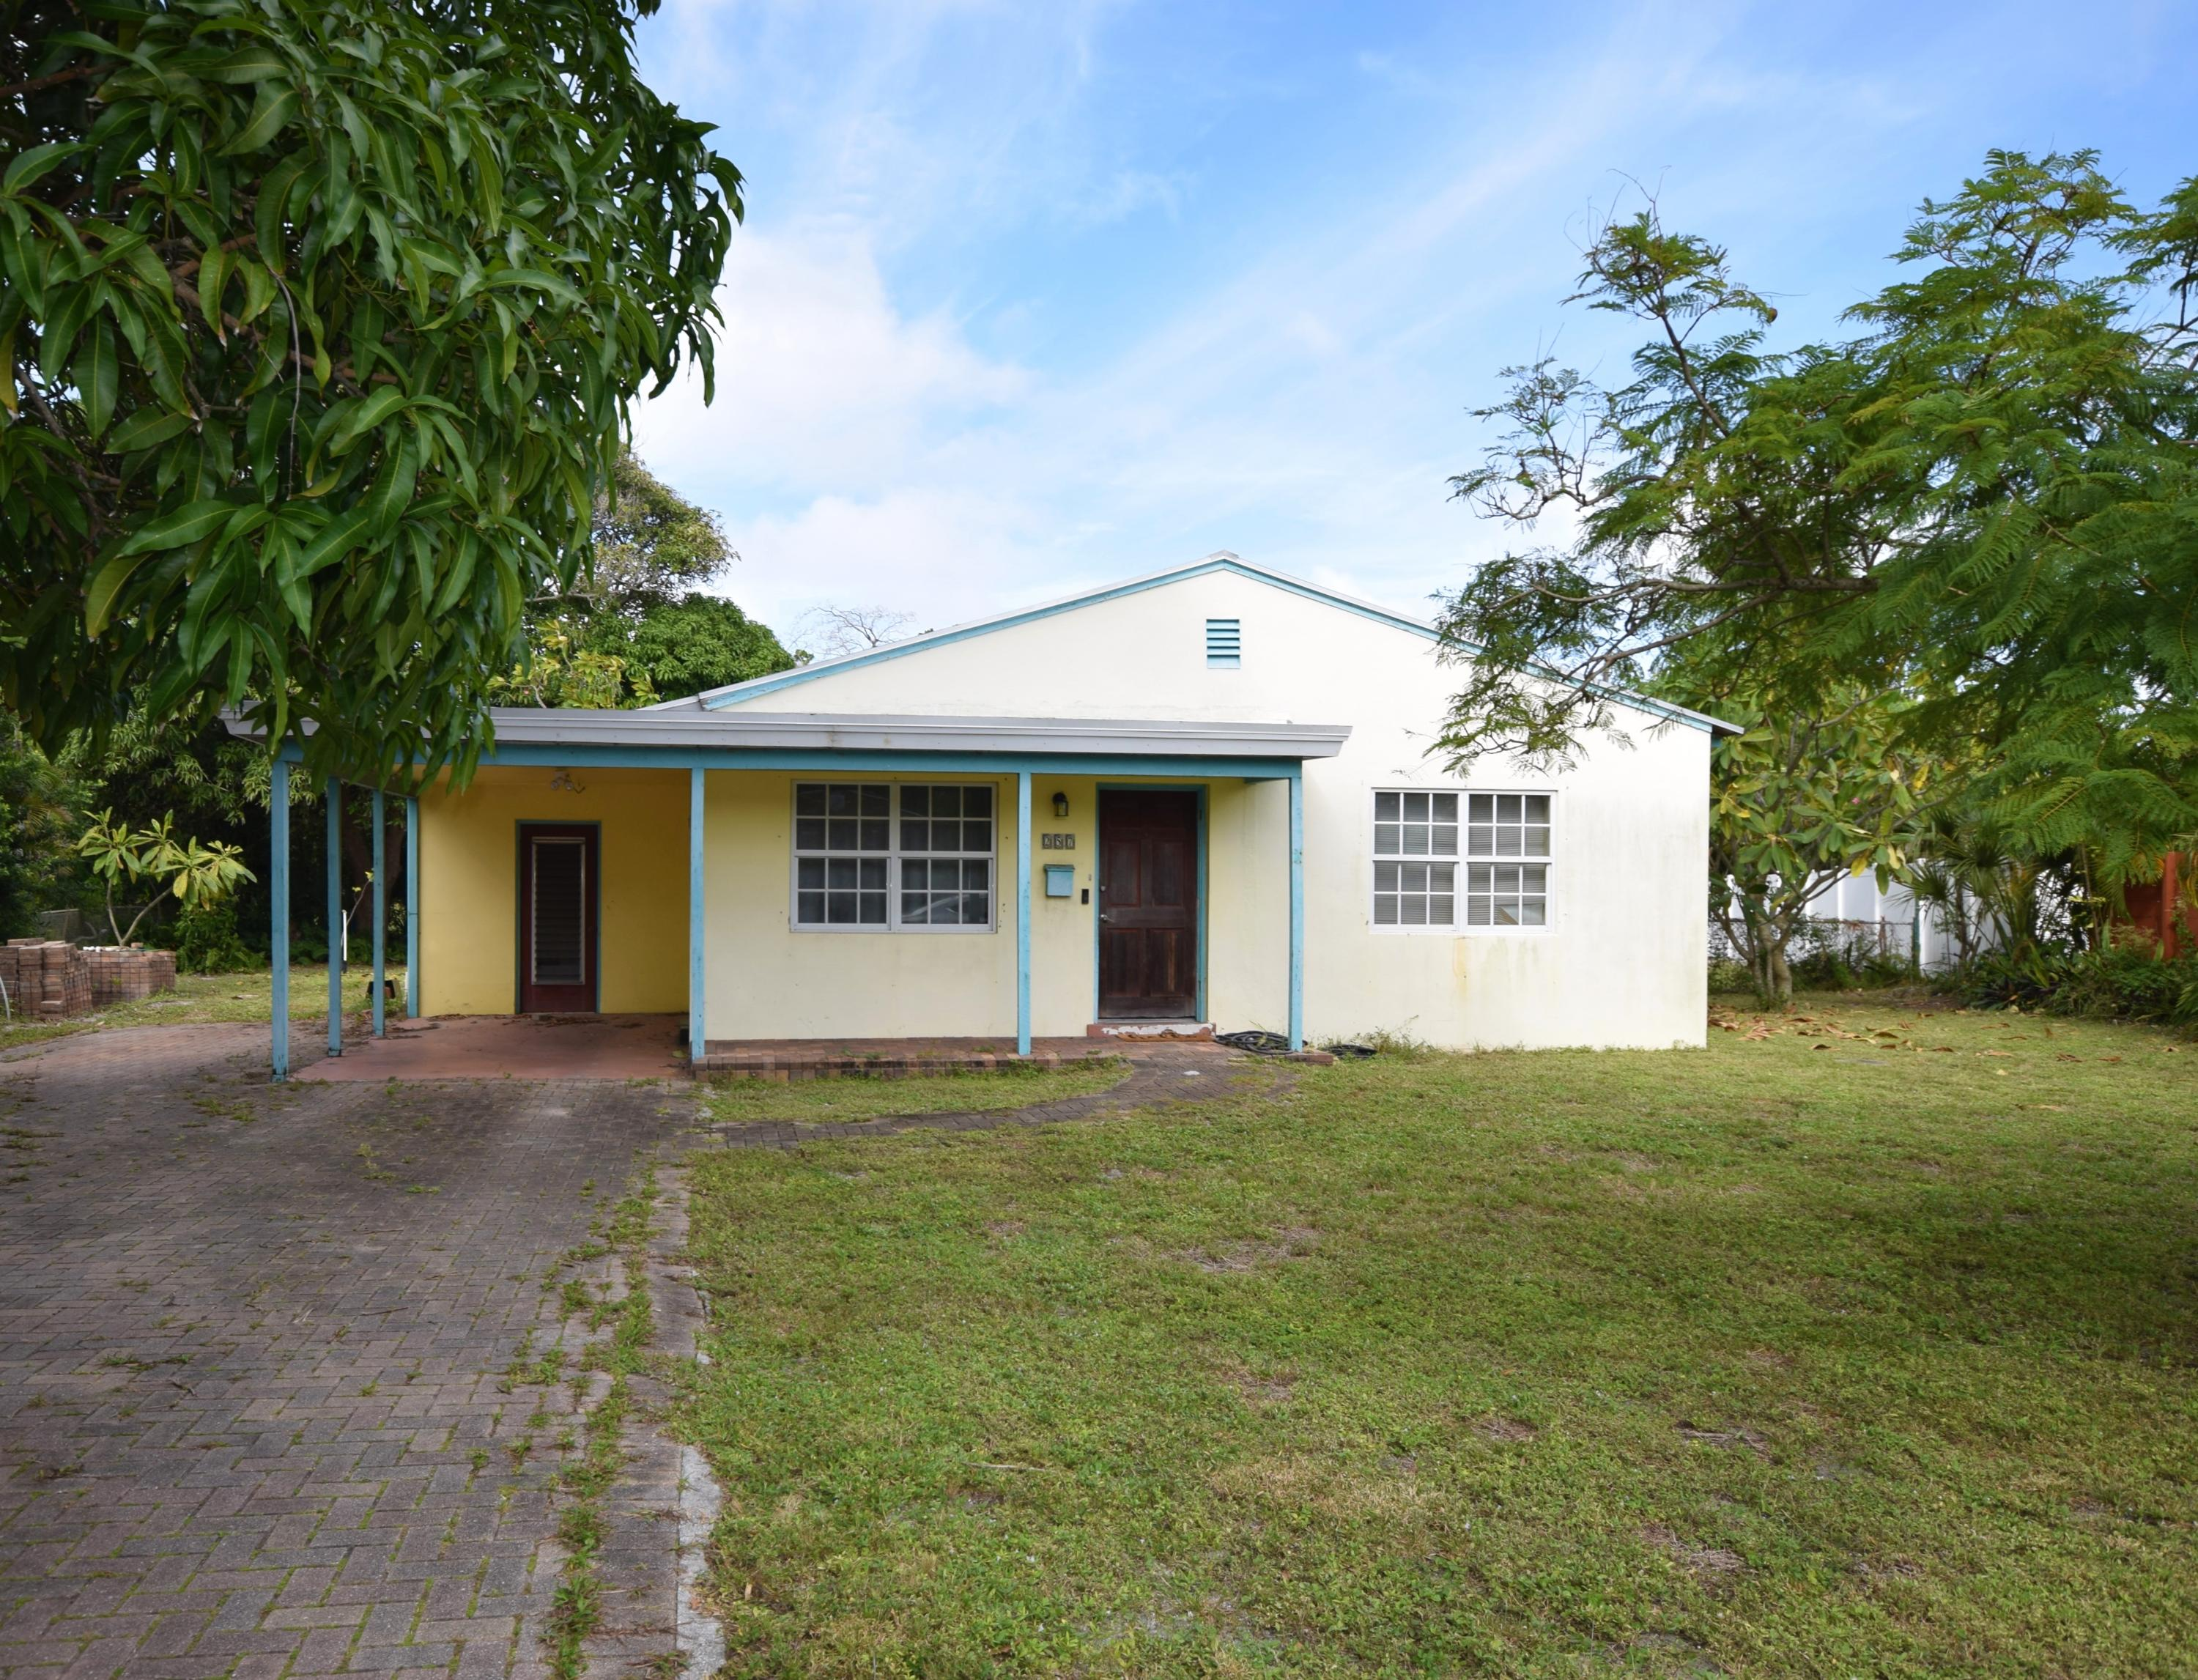 257 17th Street, Delray Beach, Florida 33444, 4 Bedrooms Bedrooms, ,2 BathroomsBathrooms,Residential,For Sale,17th,RX-10669302